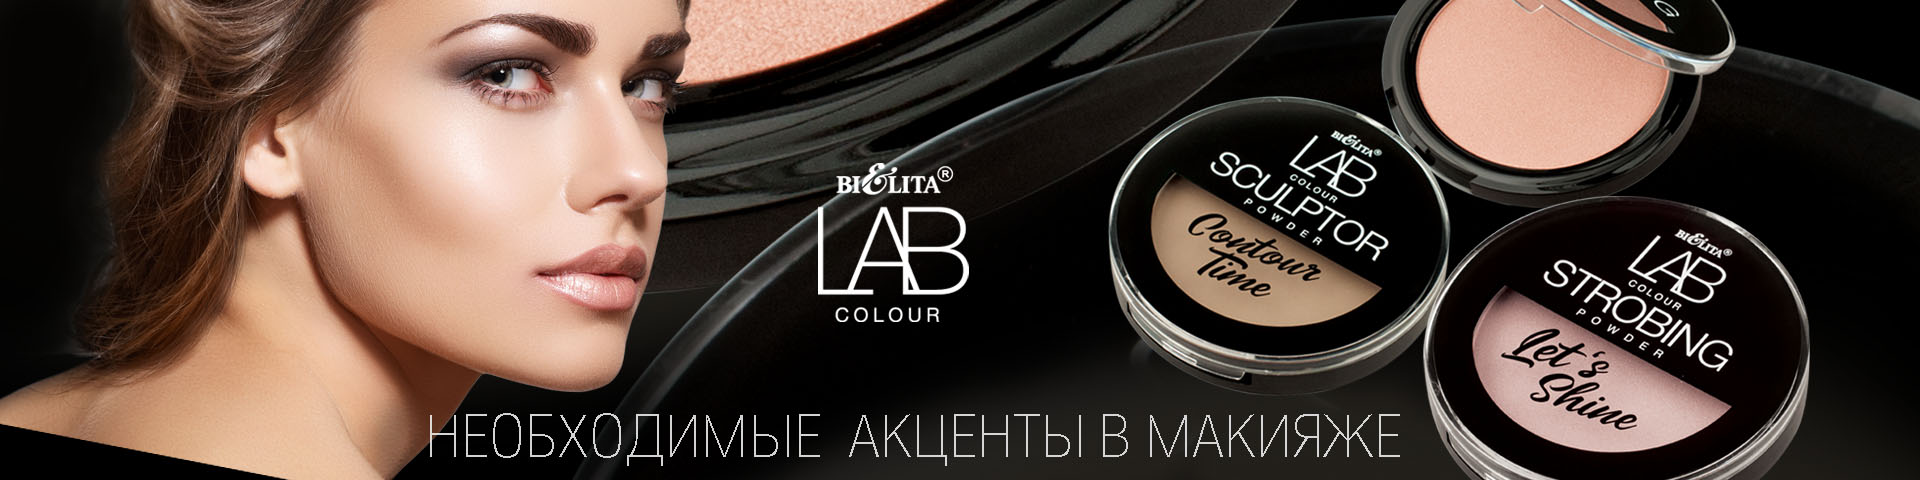 LAB colour пудра-скульптор